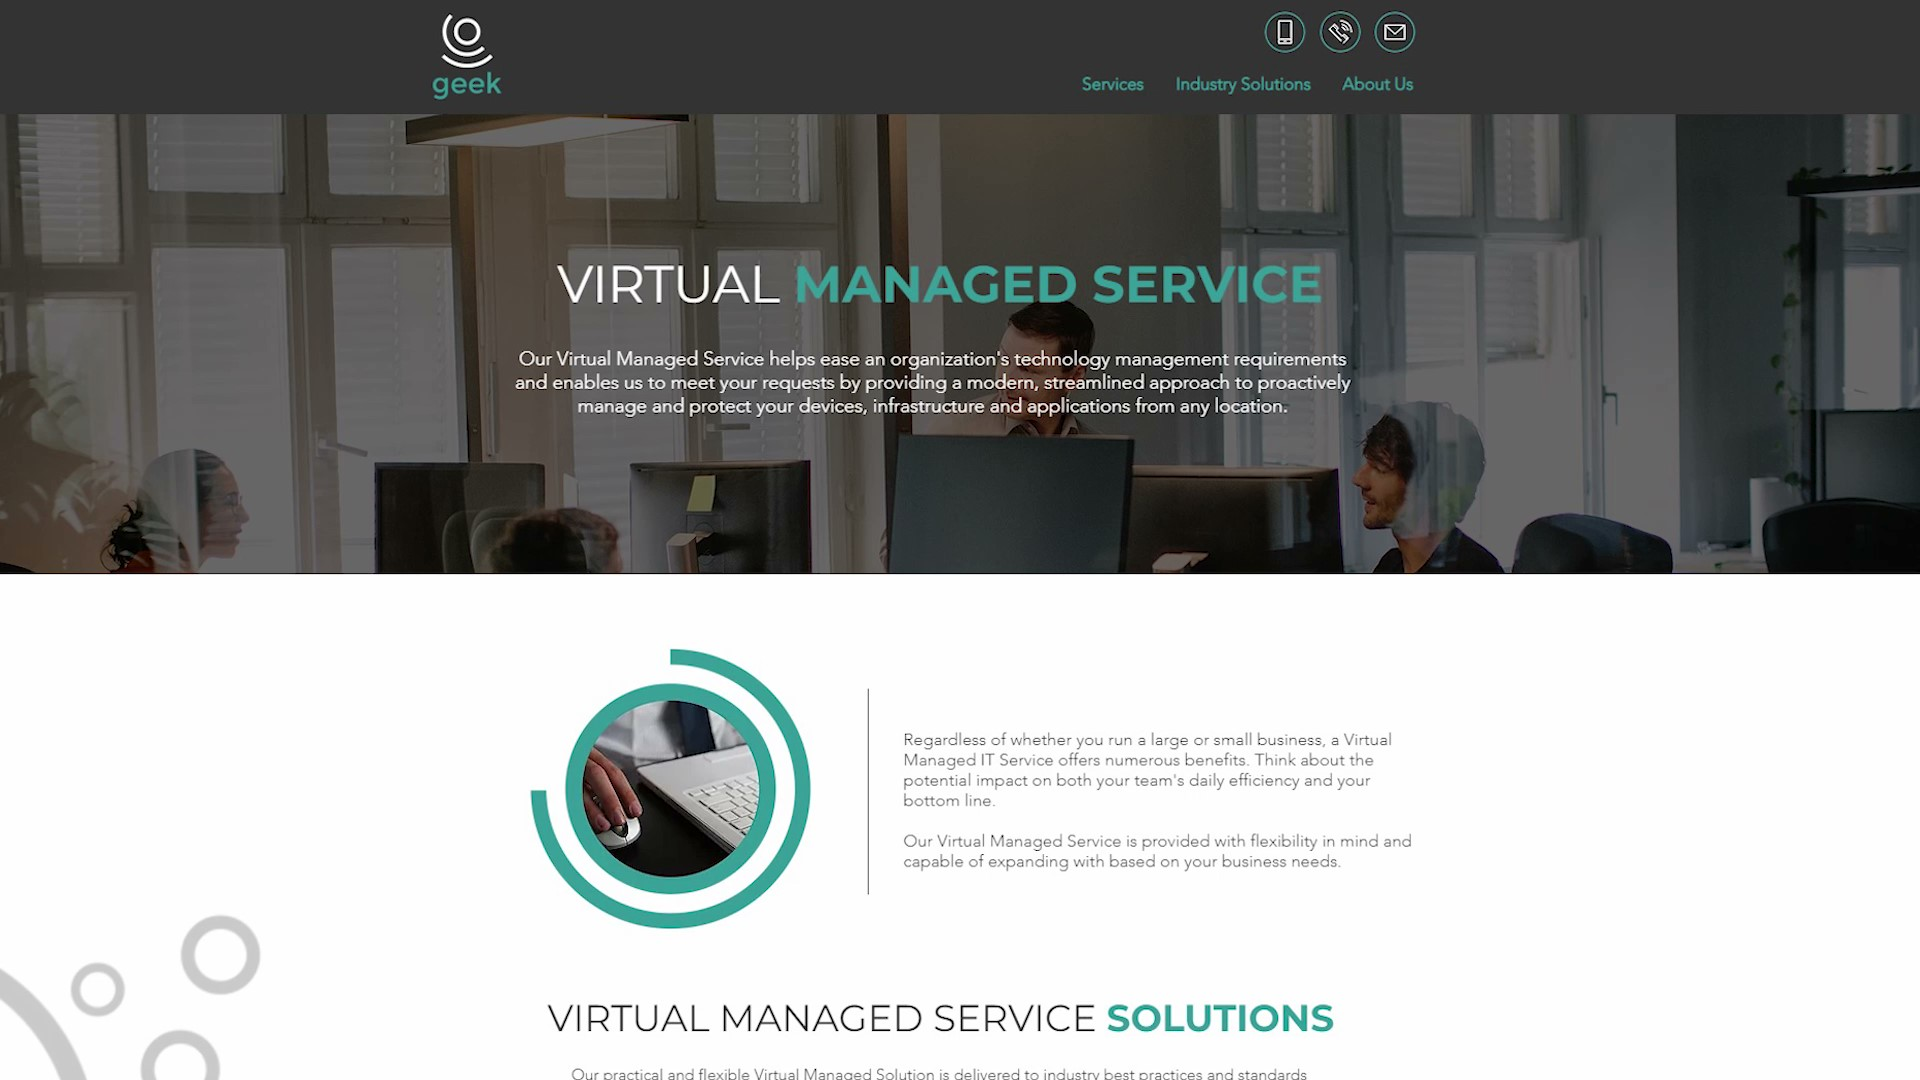 Geek Managed Services Virtual Managed Service